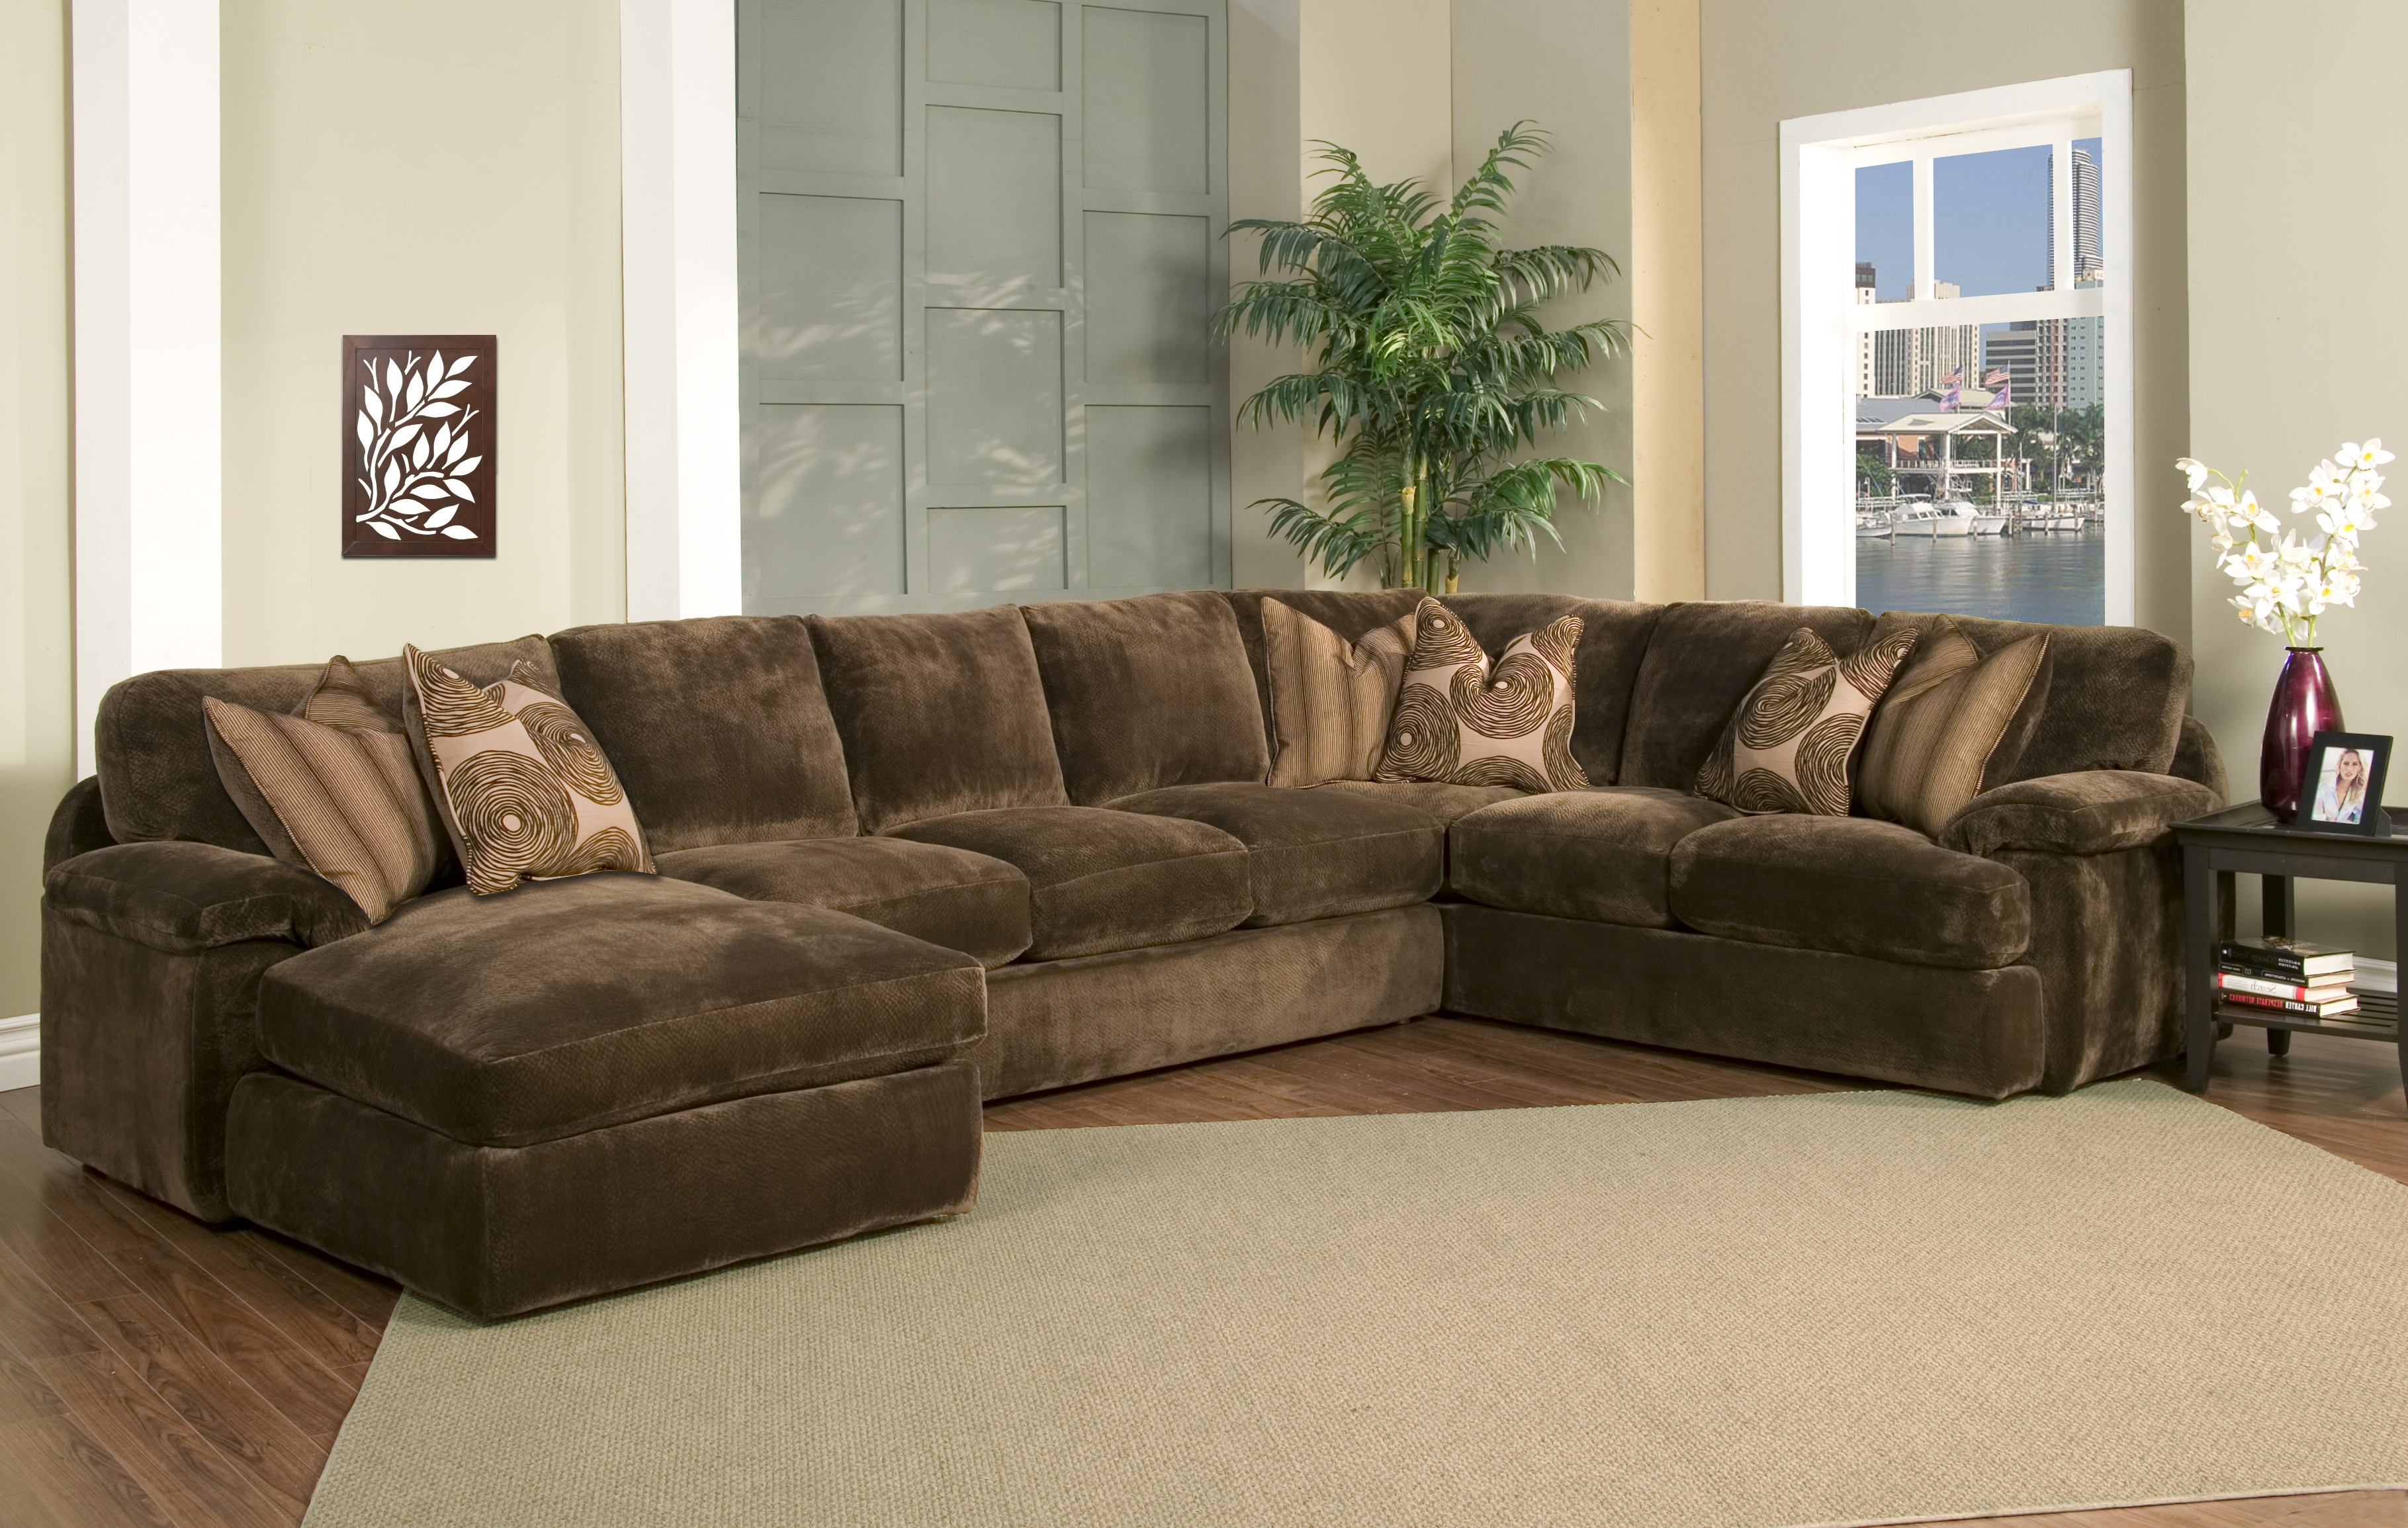 Down Filled Sectional Sofas Inside Well Known Furniture: Sofas With Down Cushions (View 3 of 15)